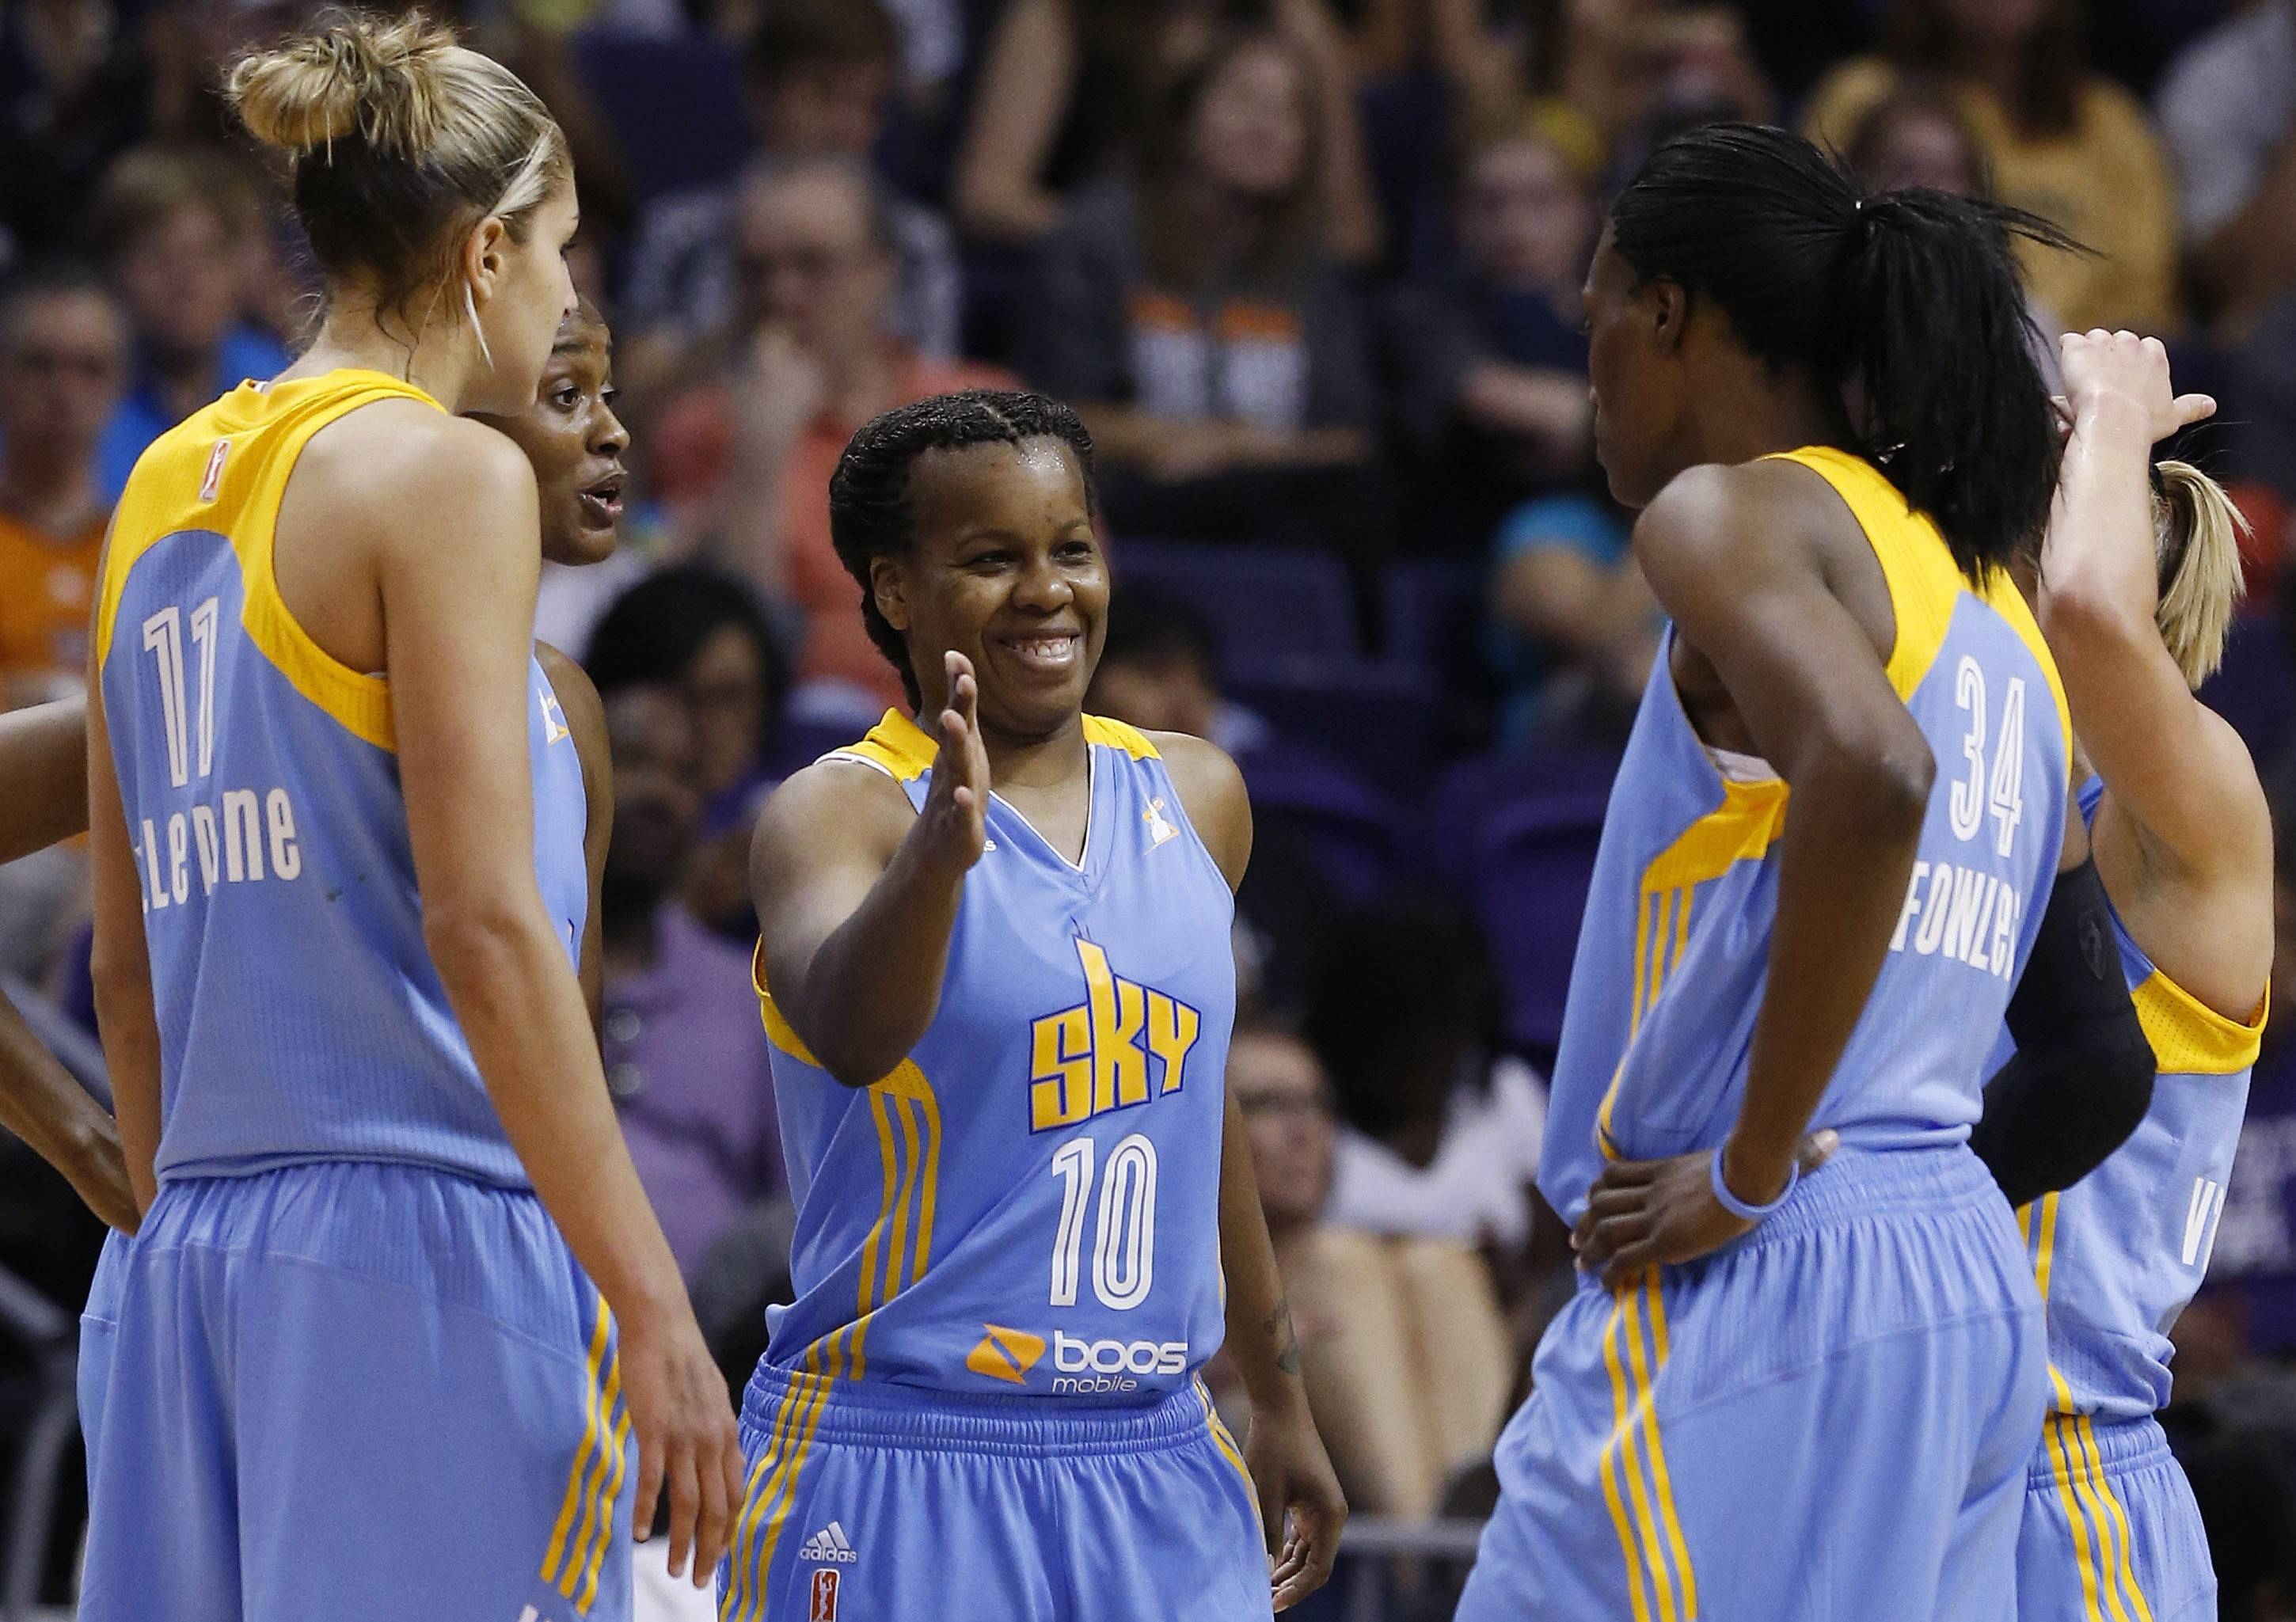 Chicago Sky guard Epiphanny Prince, center, has passed a physical and is ready to rejoin her team for the WNBA season, team officials said Friday.